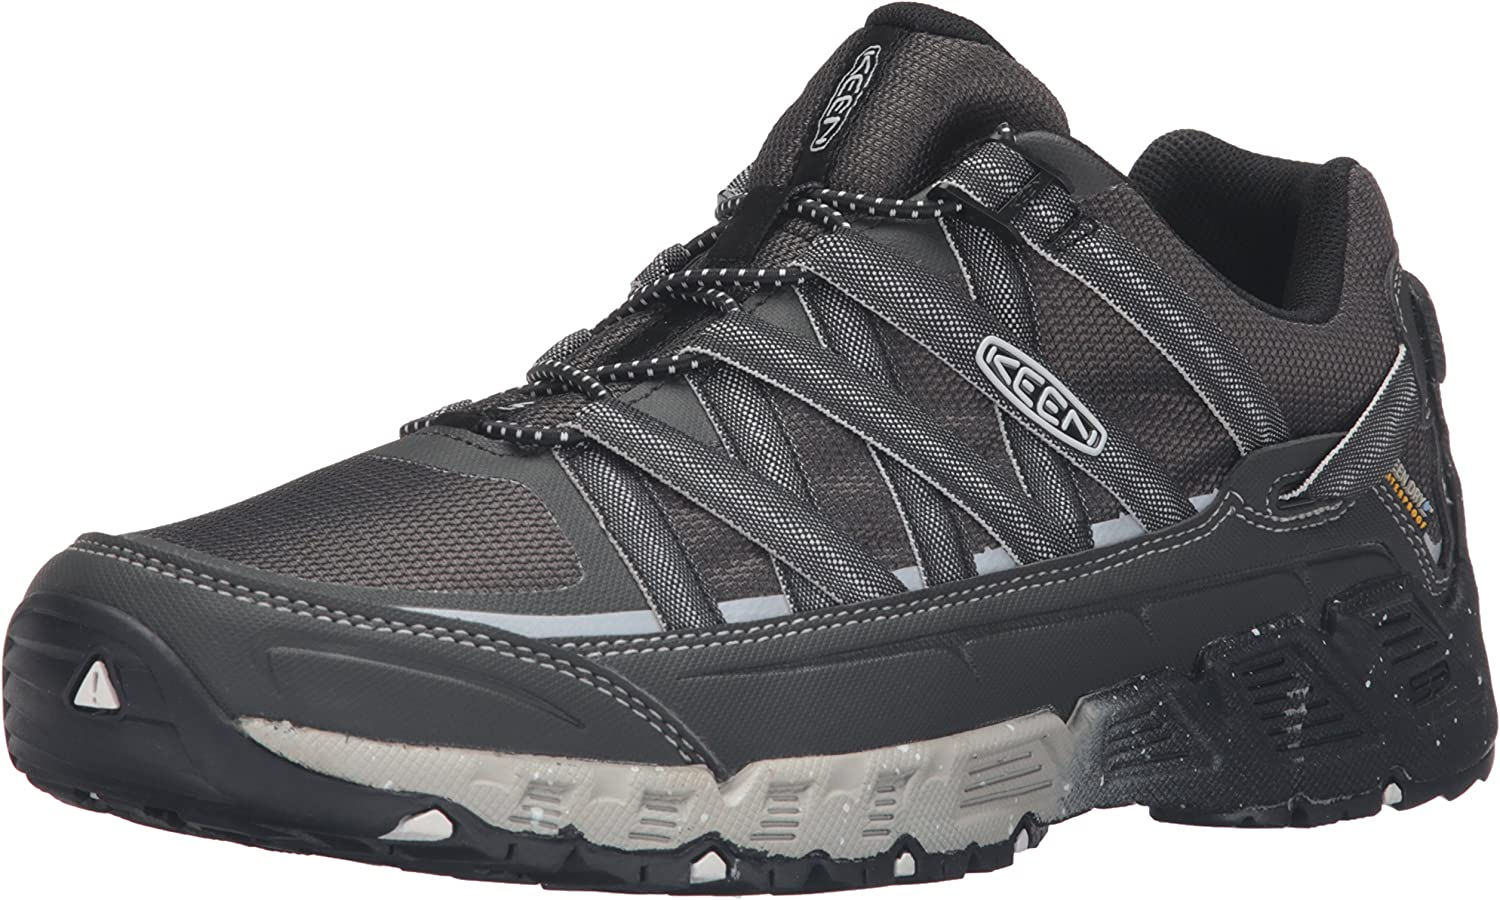 KEEN Men's 1015324 Hiking shoes